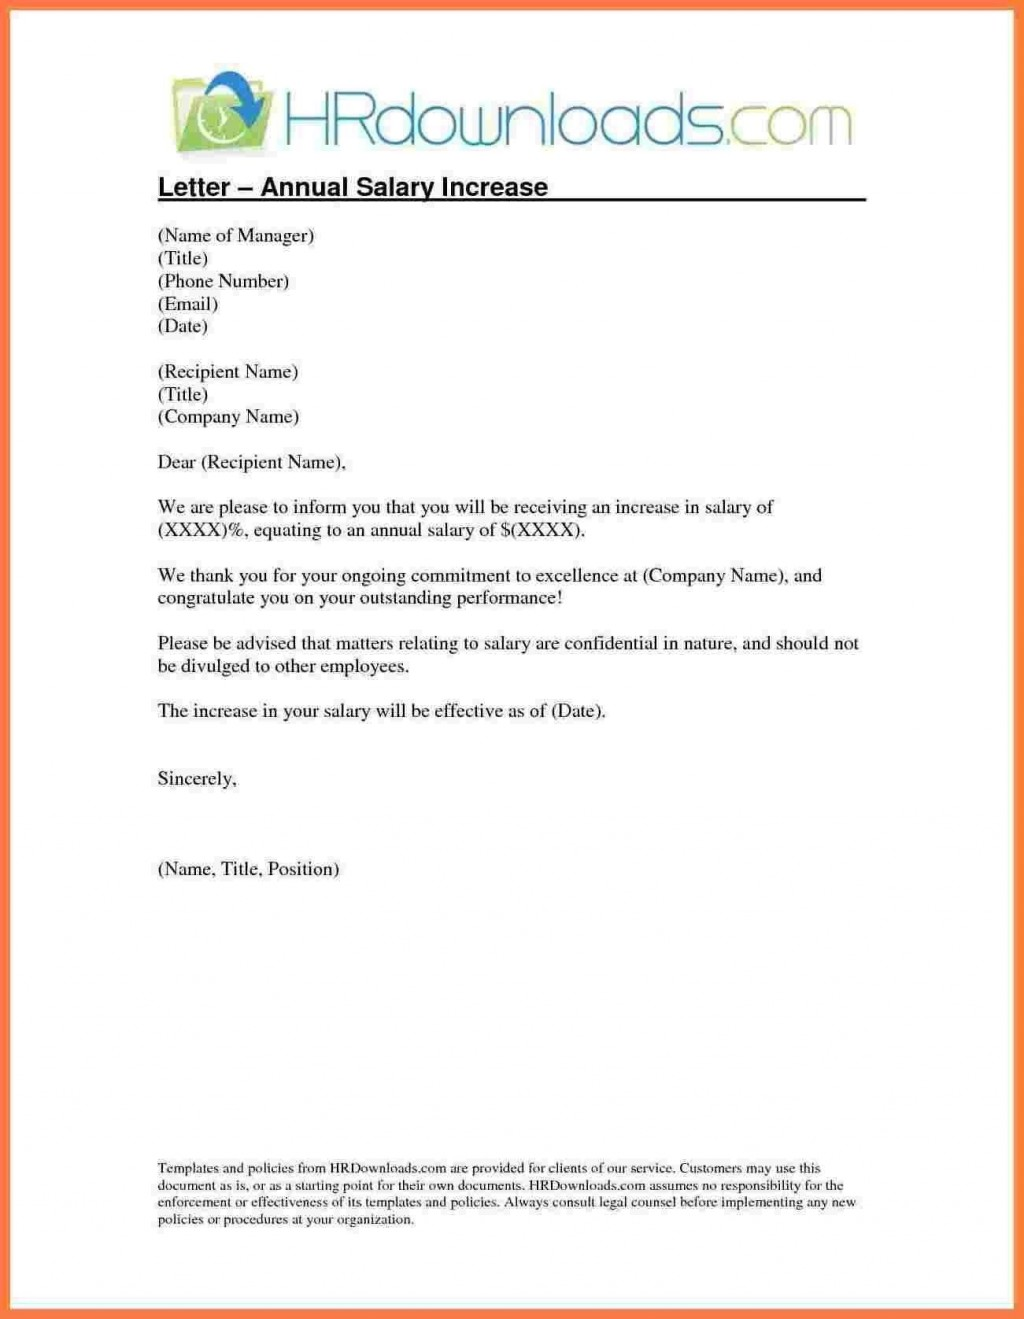 005 Singular Salary Increase Letter Template Idea  From Employer To Employee Australia No ForLarge